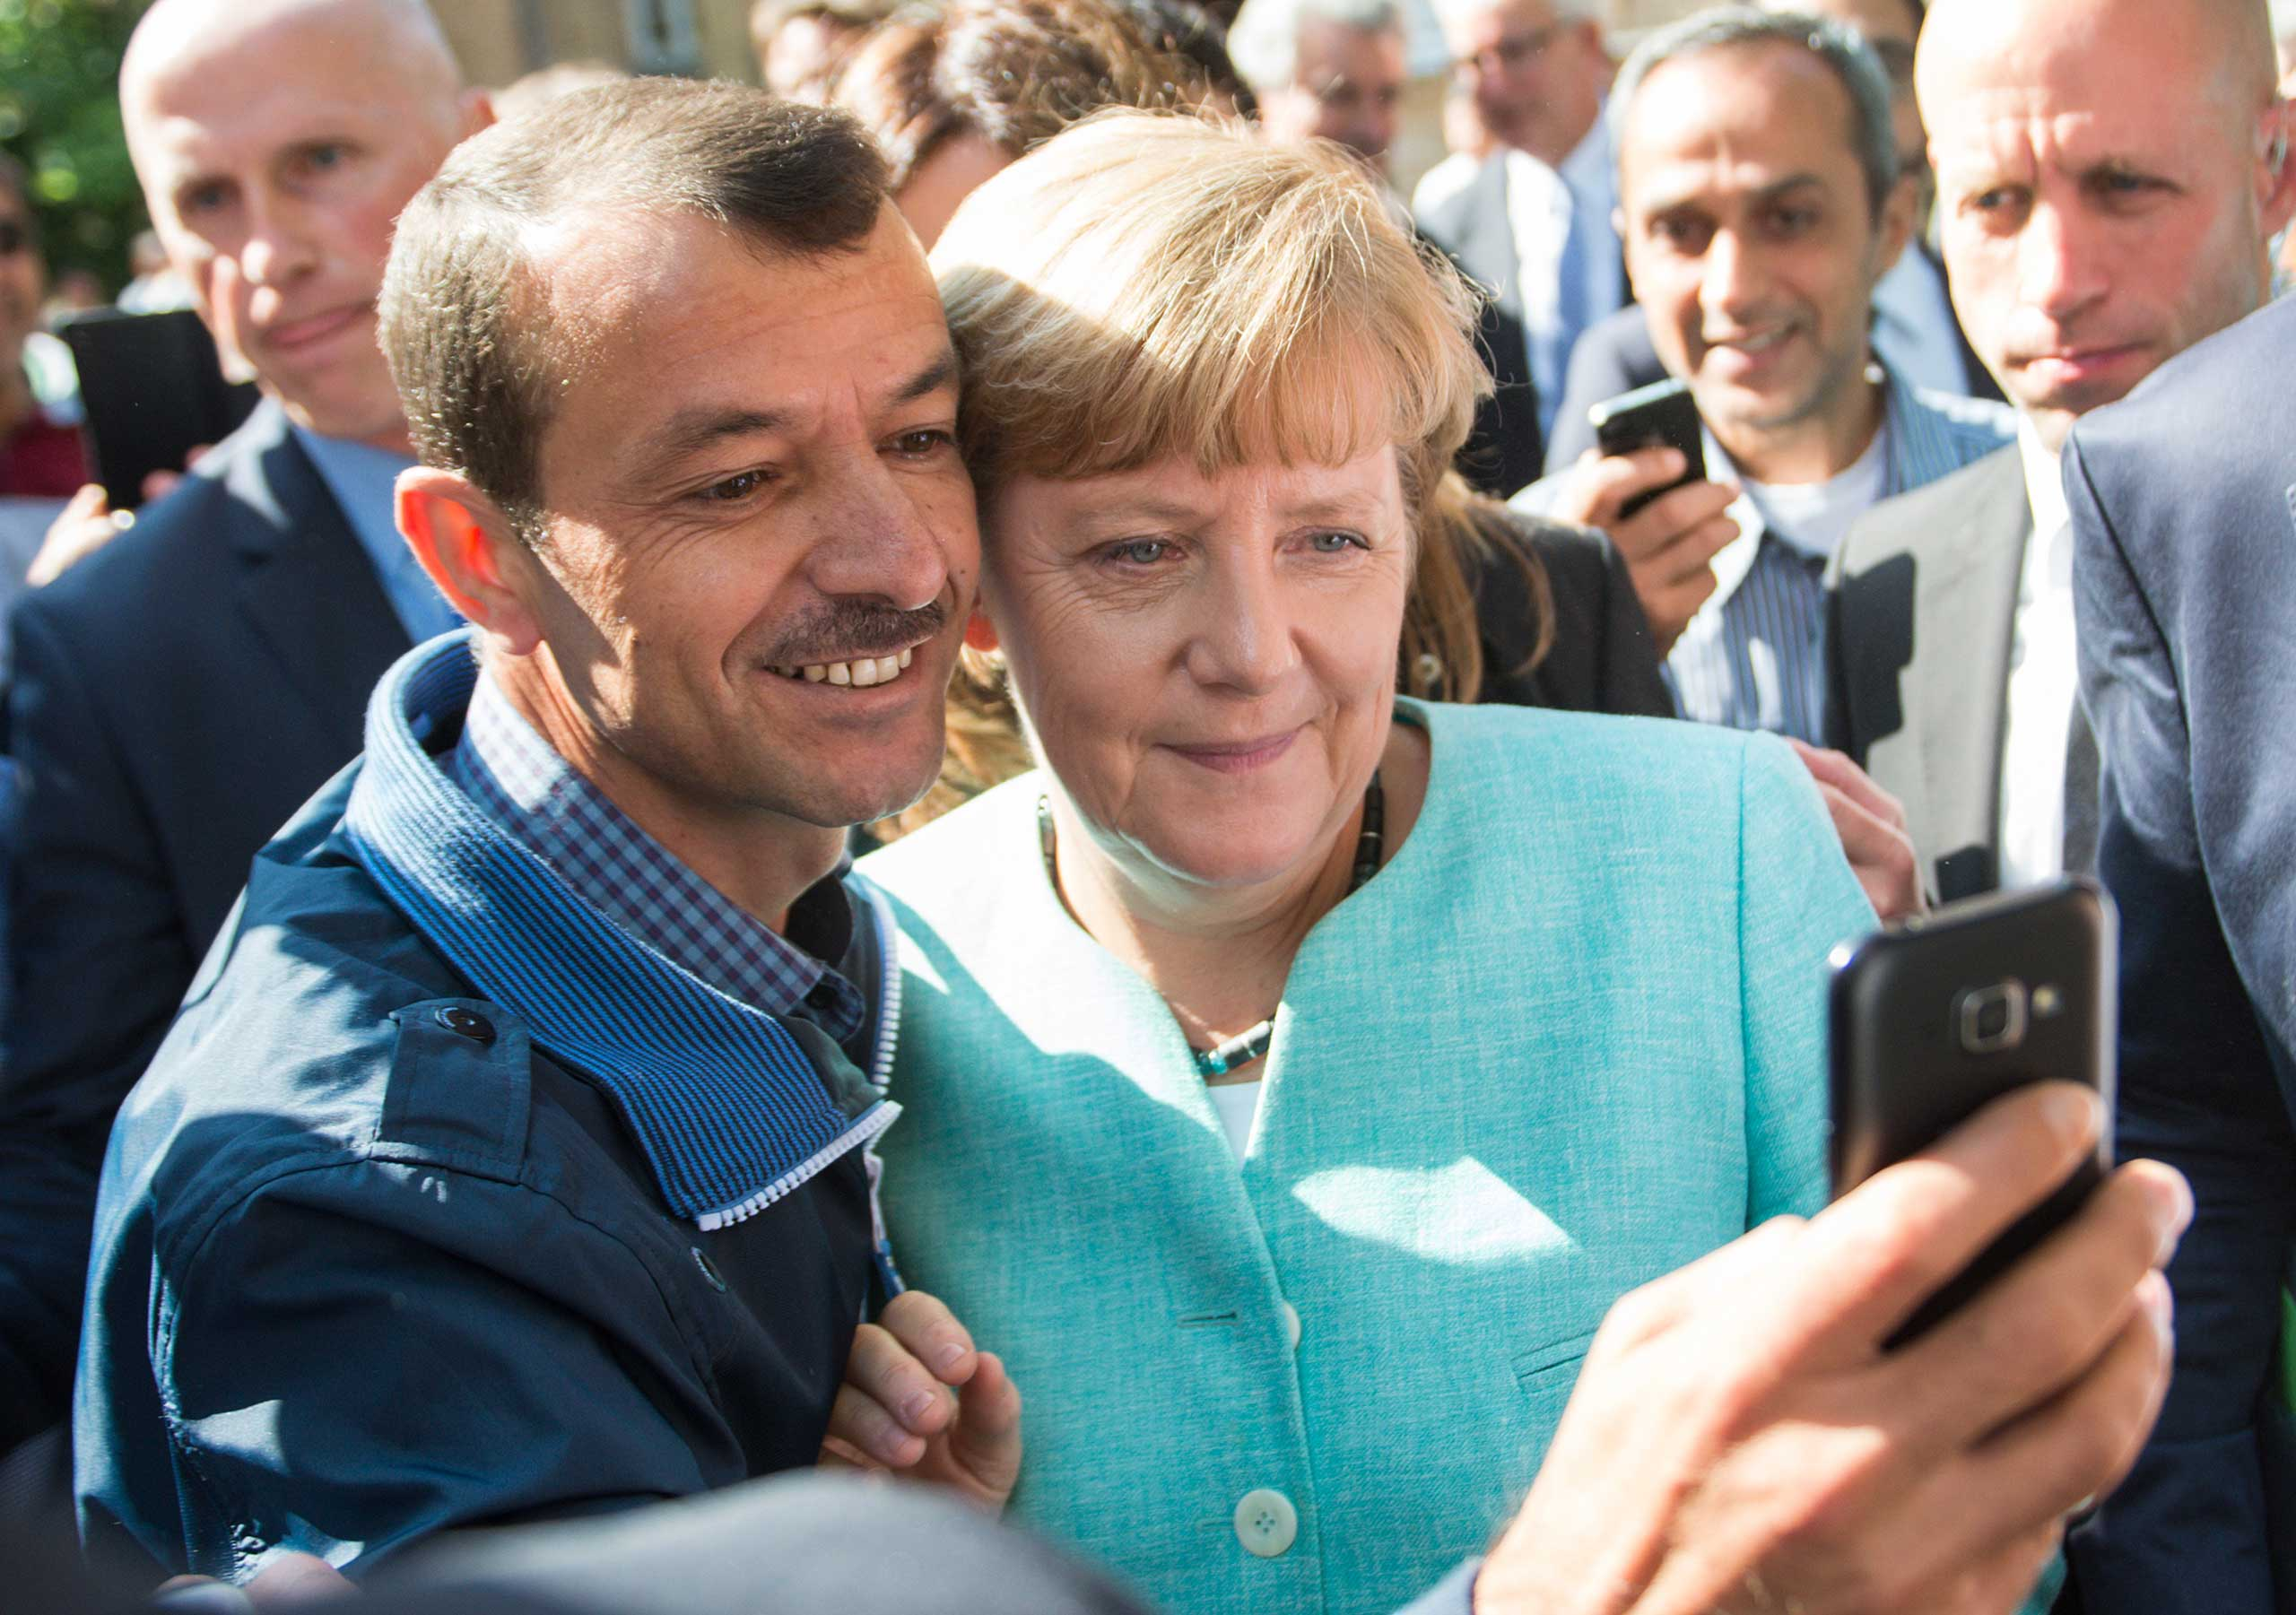 German Chancellor Angela Merkel (R) has a selfie taken with a refugee during a visit to a refugee reception centre in Berlin, 10 Sept. 2015.